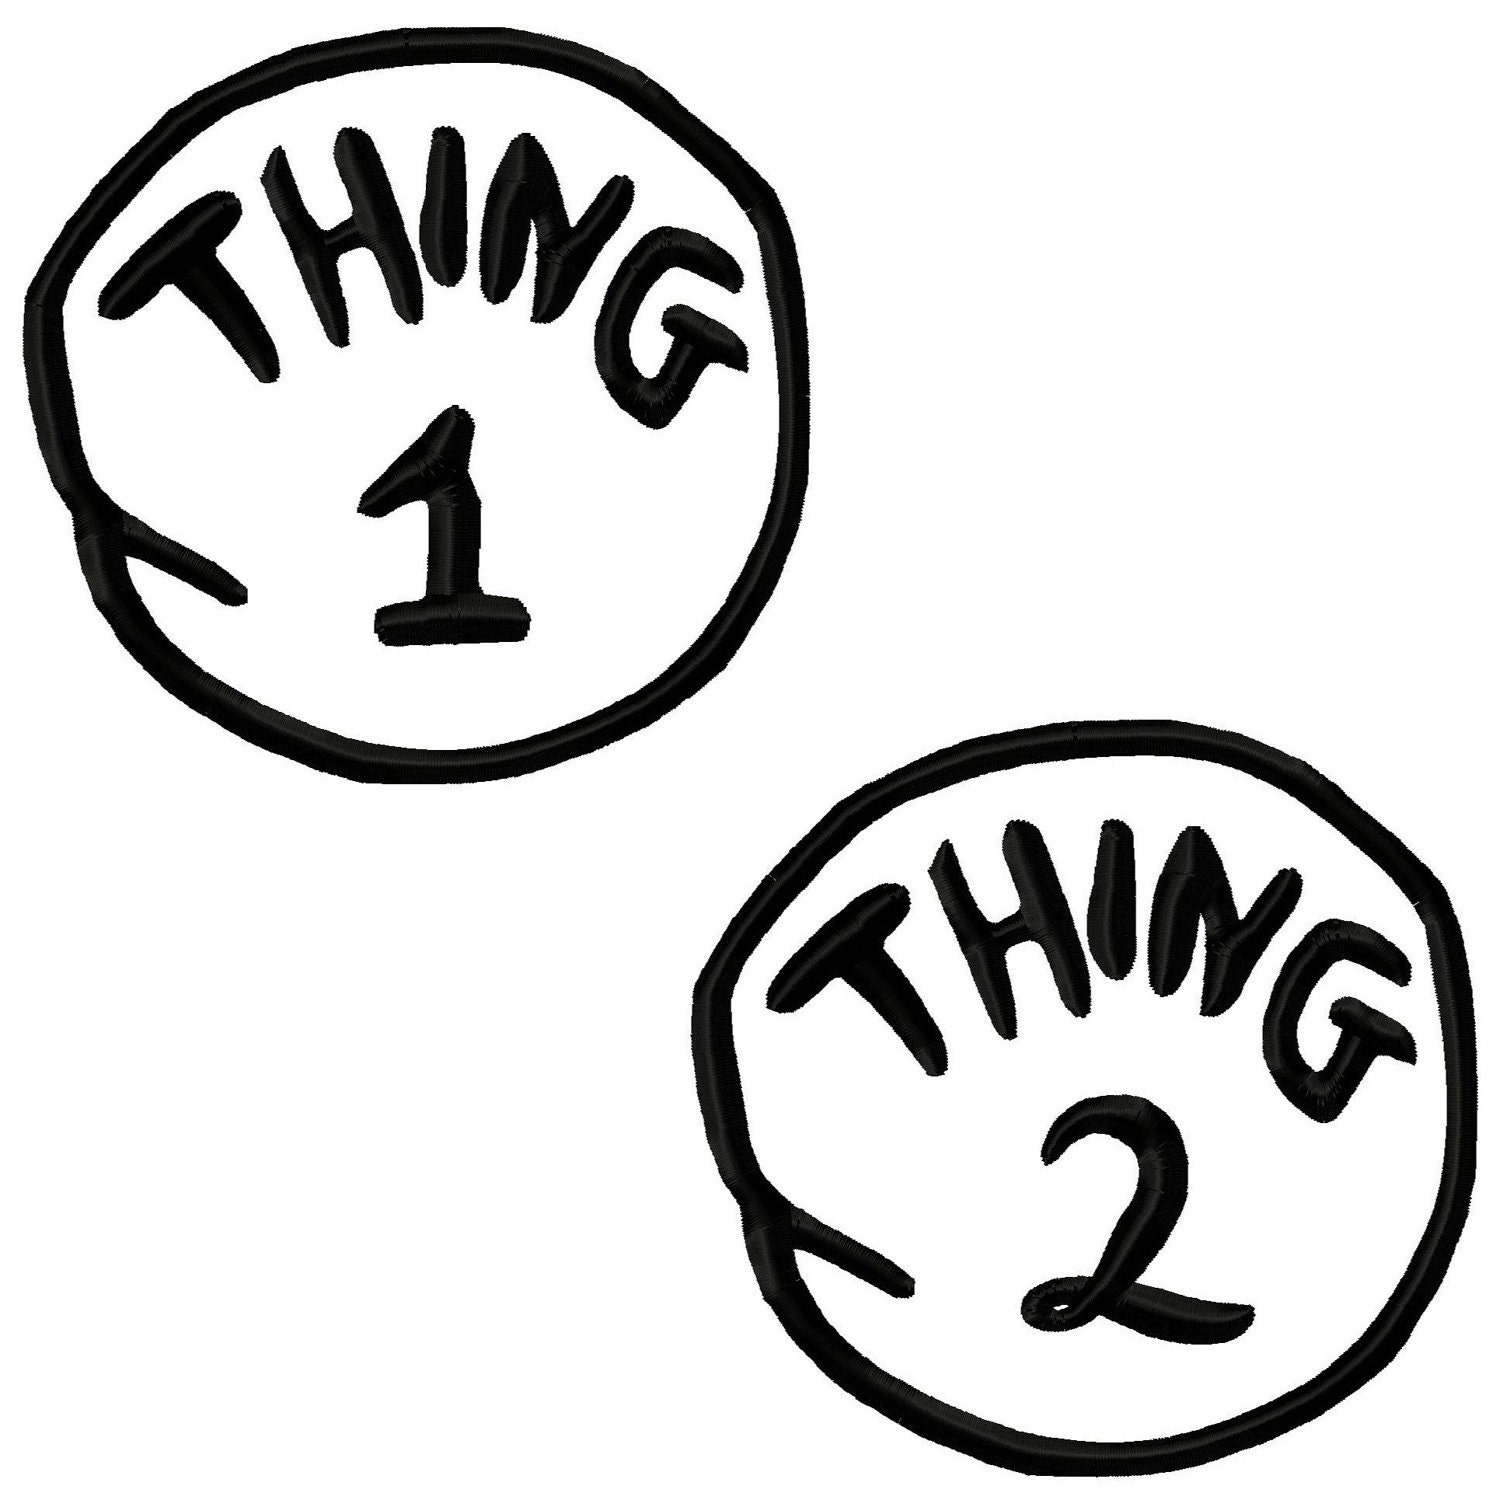 Amazing image in thing 1 and thing 2 printable circles